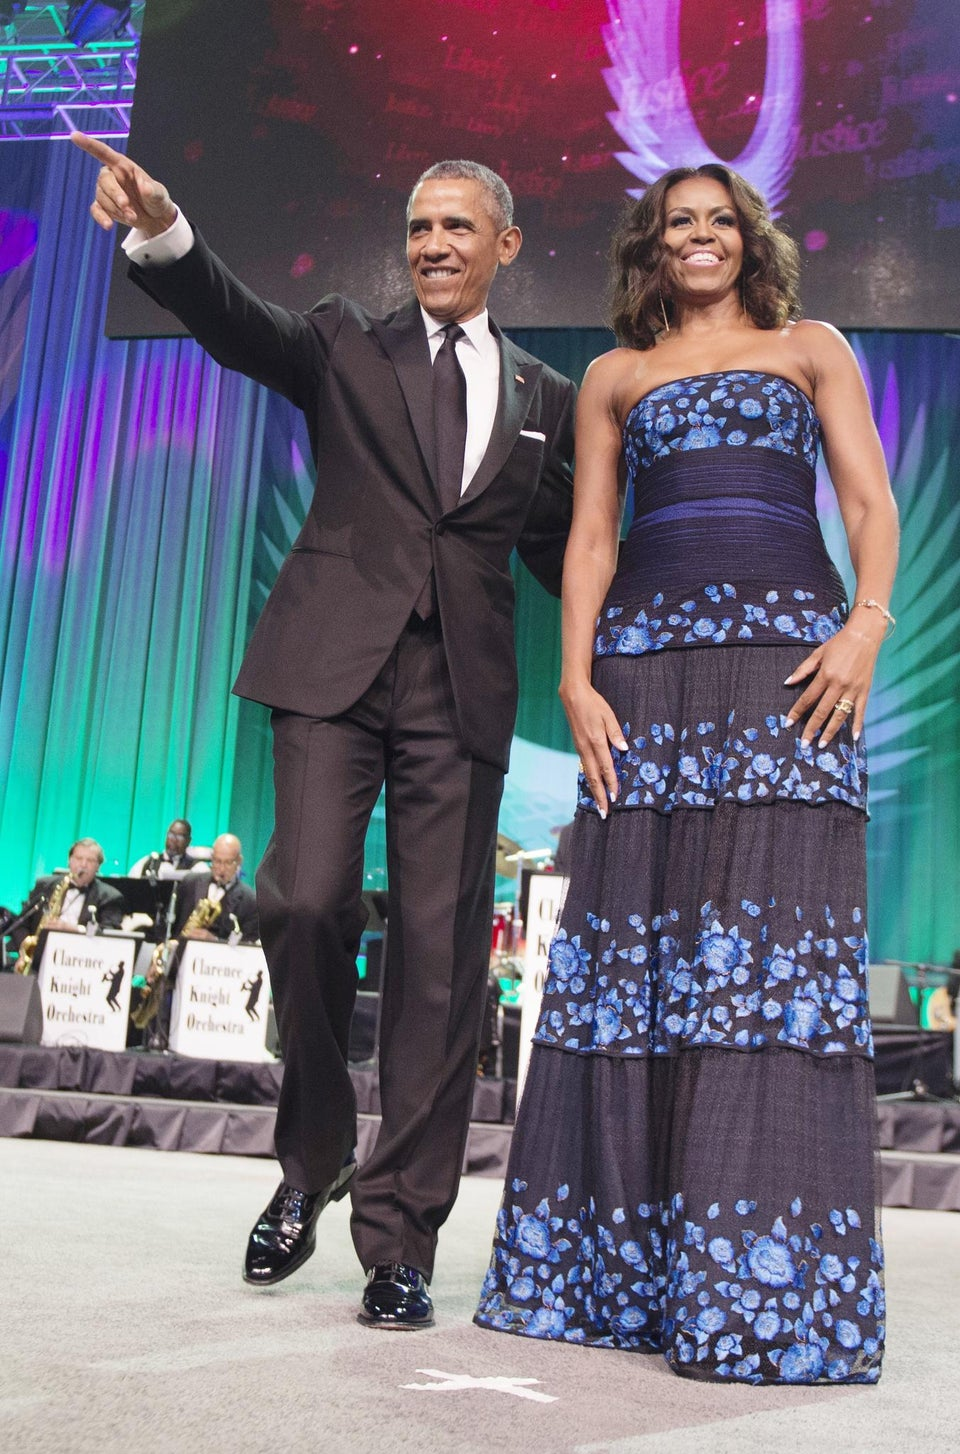 Happy Anniversary! President Obama and First Lady Michelle Obama Celebrate 23 Years of Marriage